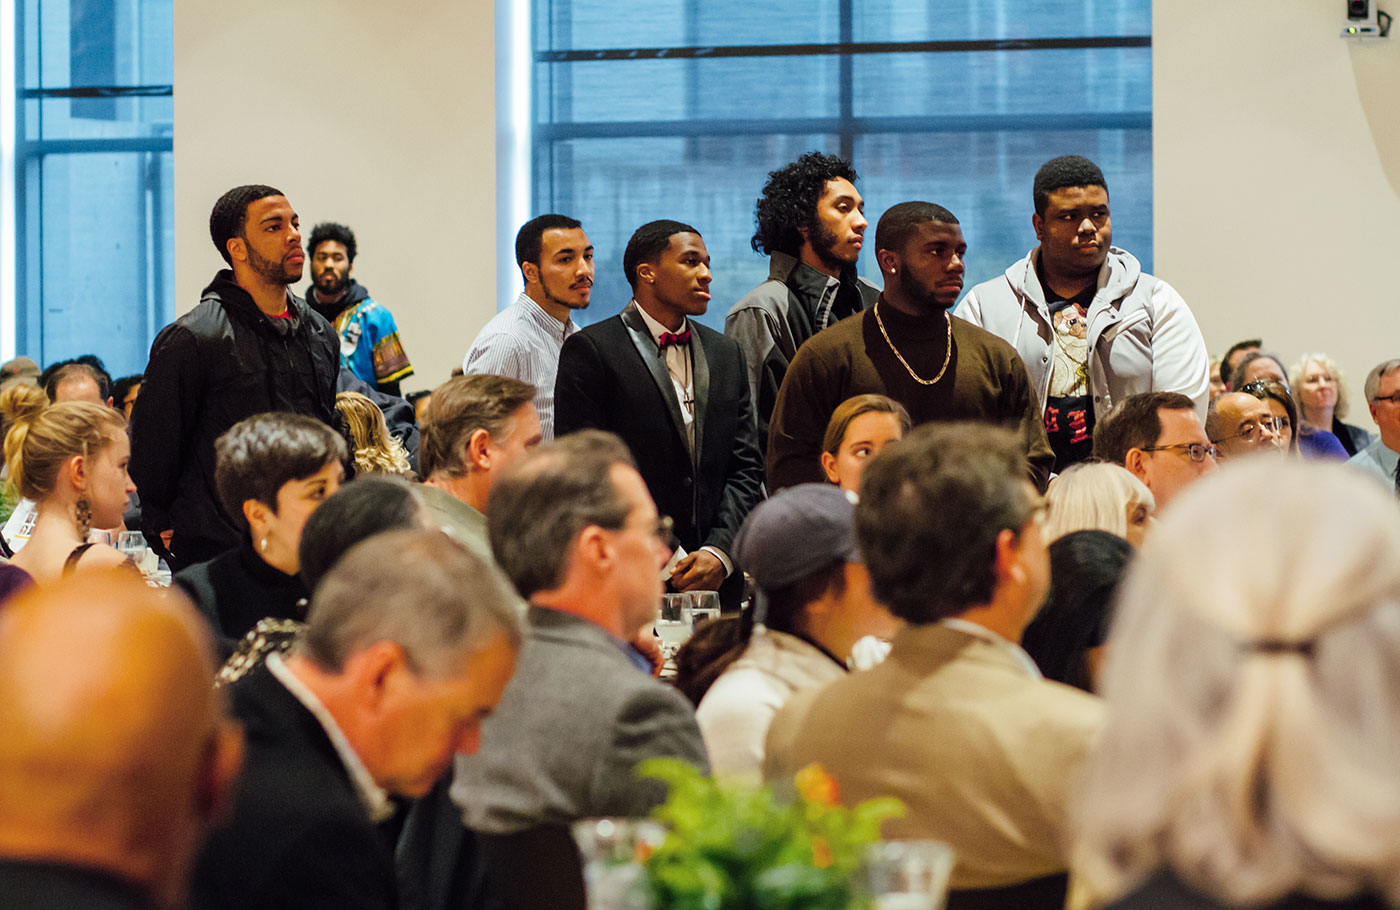 UO students and faculty members honor diversity at the Reverend Dr. Martin Luther King Jr. awards luncheon.